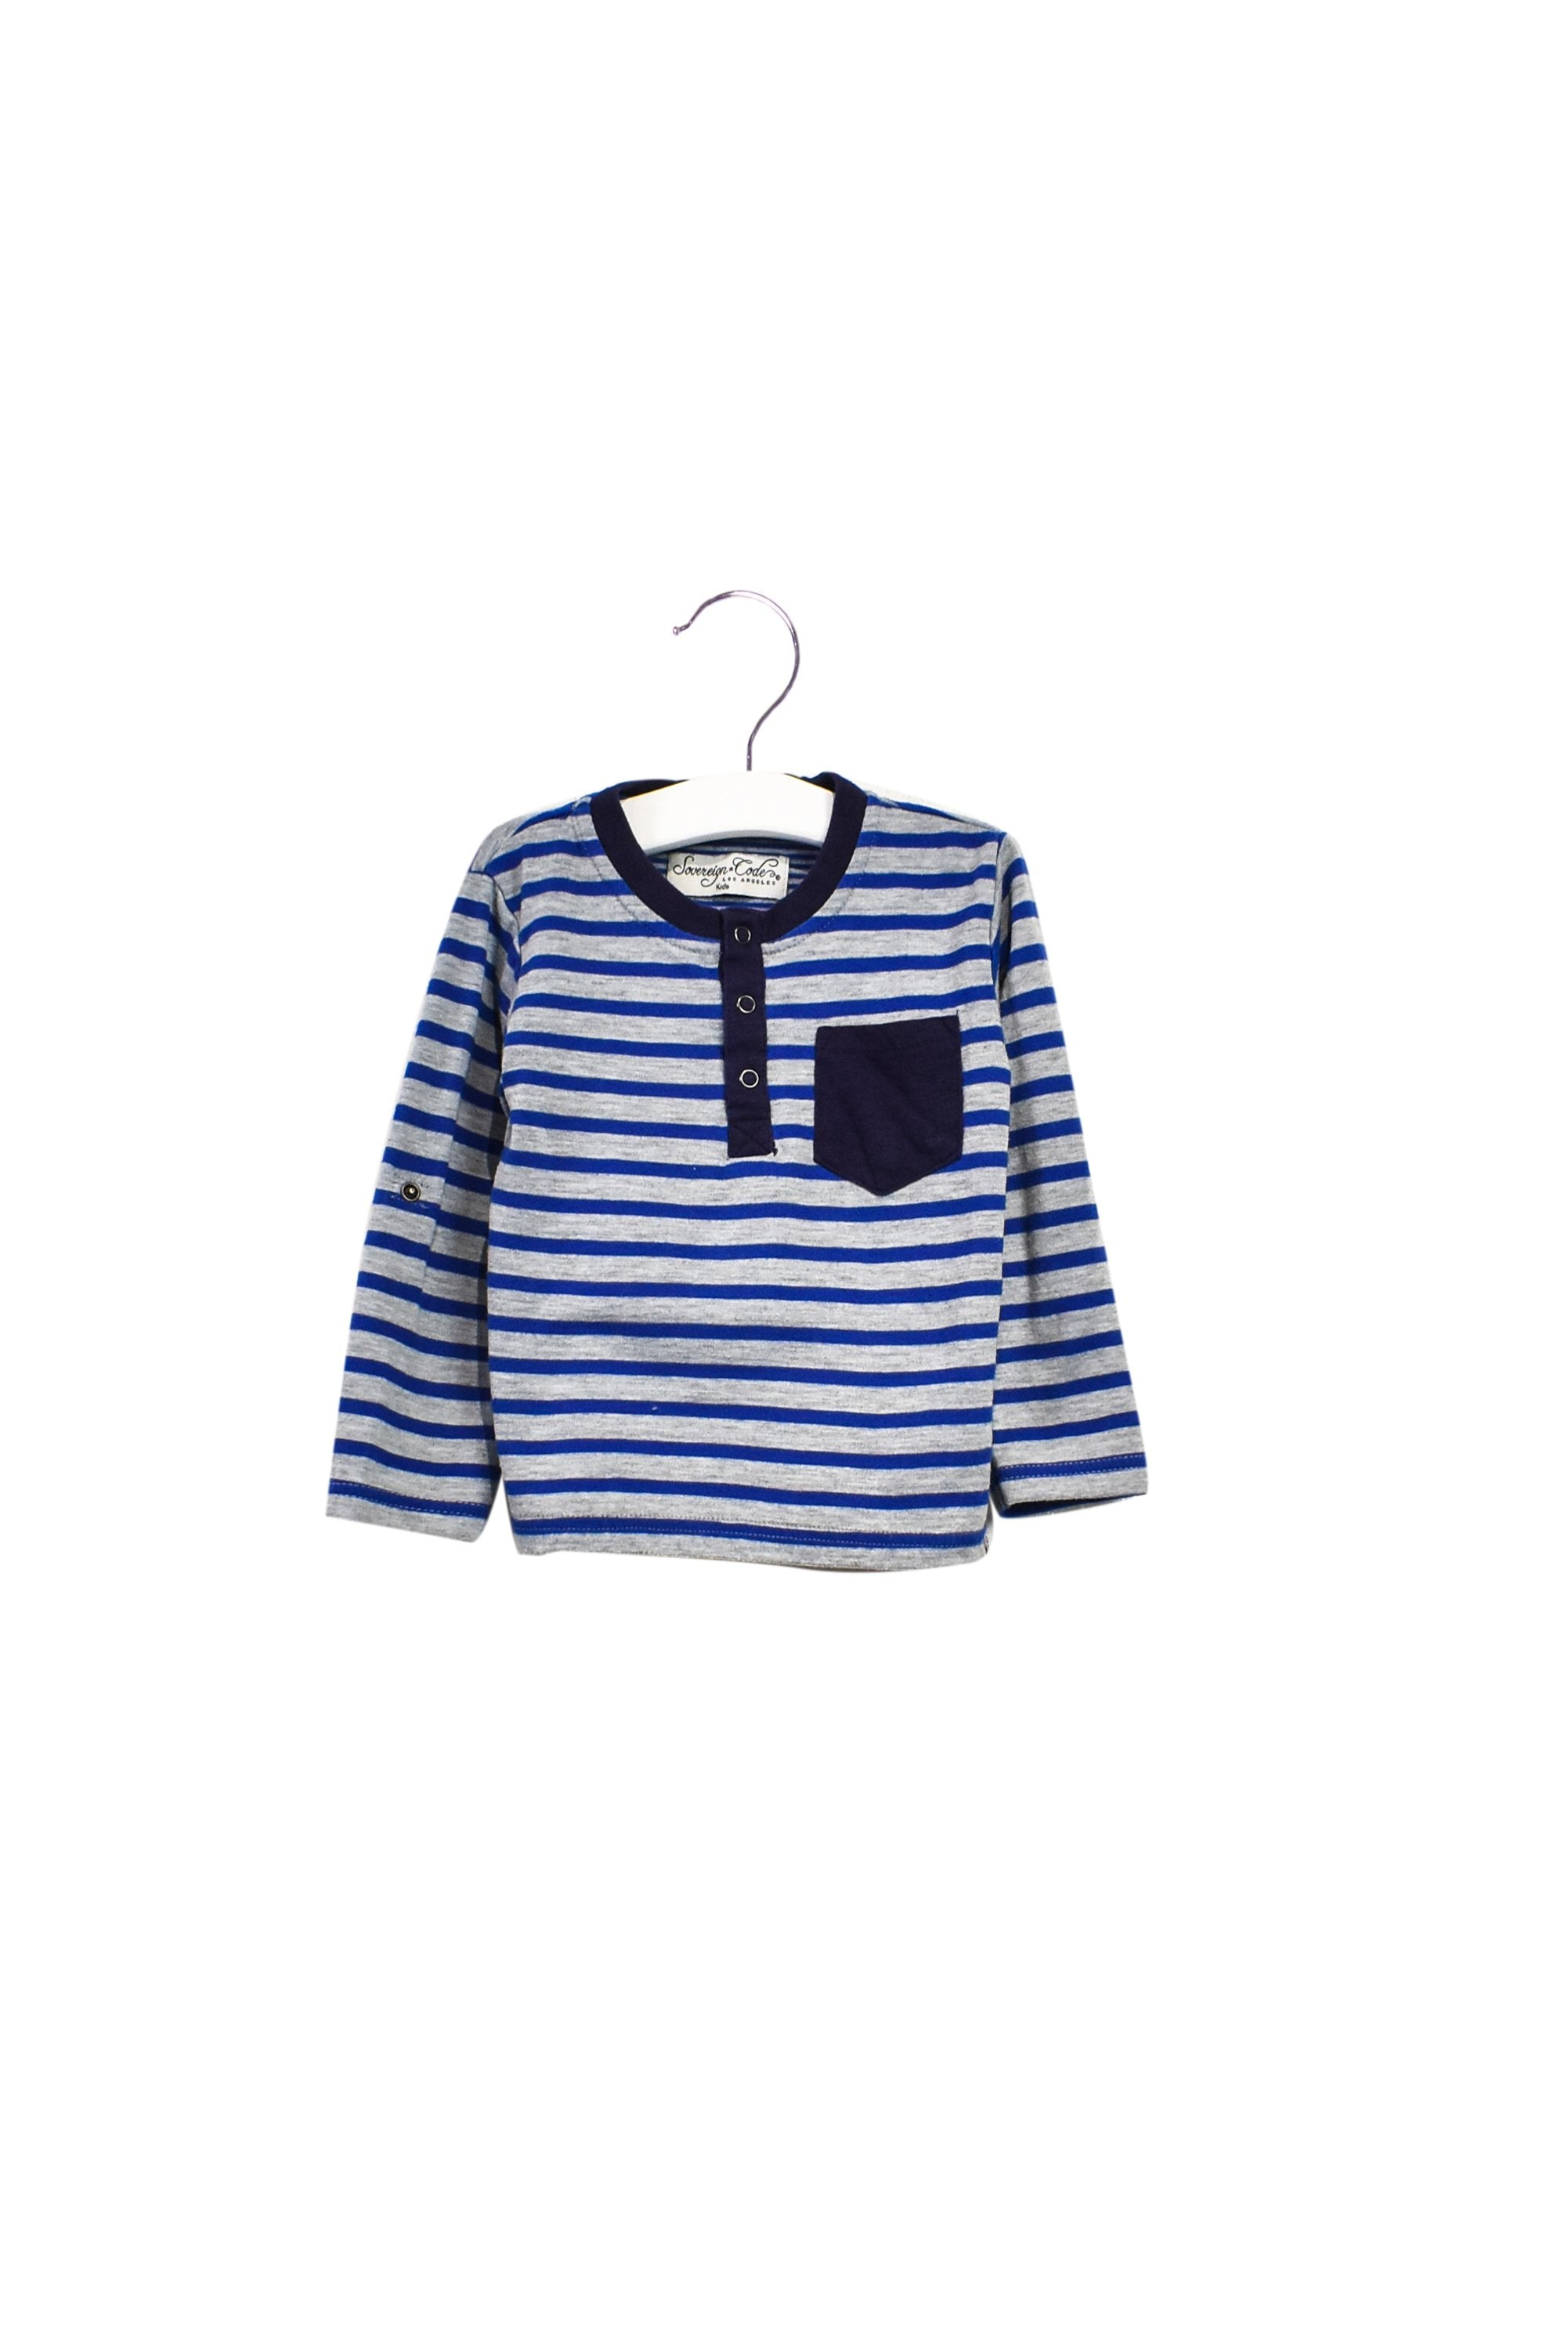 10023745 Sovereign Code Baby~Long Sleeve Top 24M at Retykle